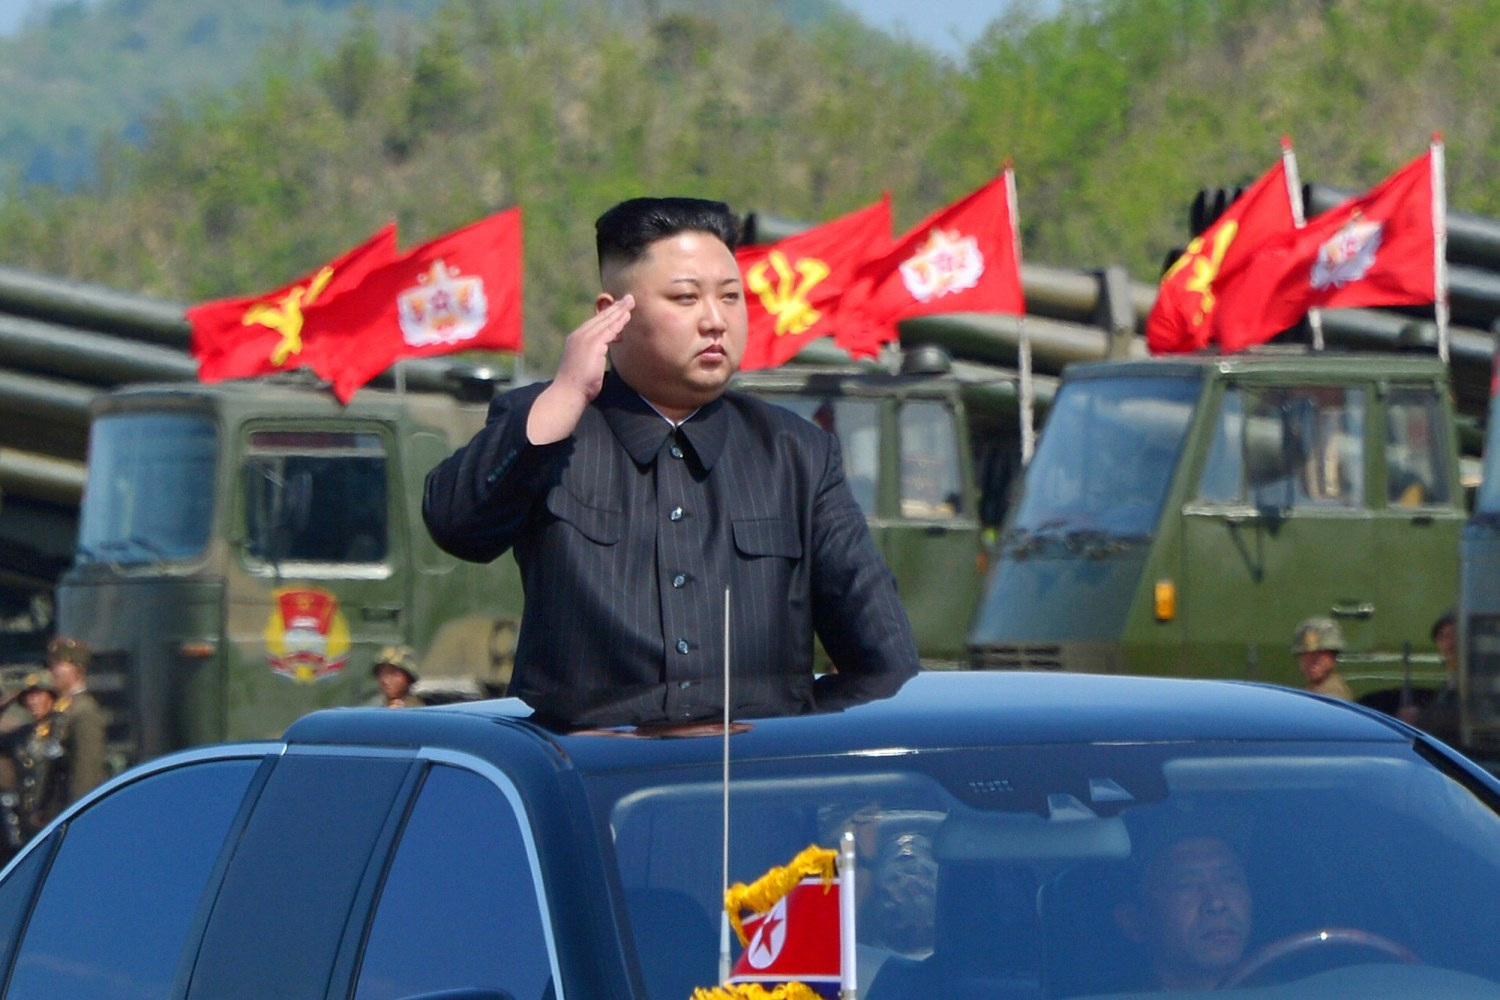 Kim Jong Un watches a military drill marking the 85th anniversary of the establishment of the Korean People's Army